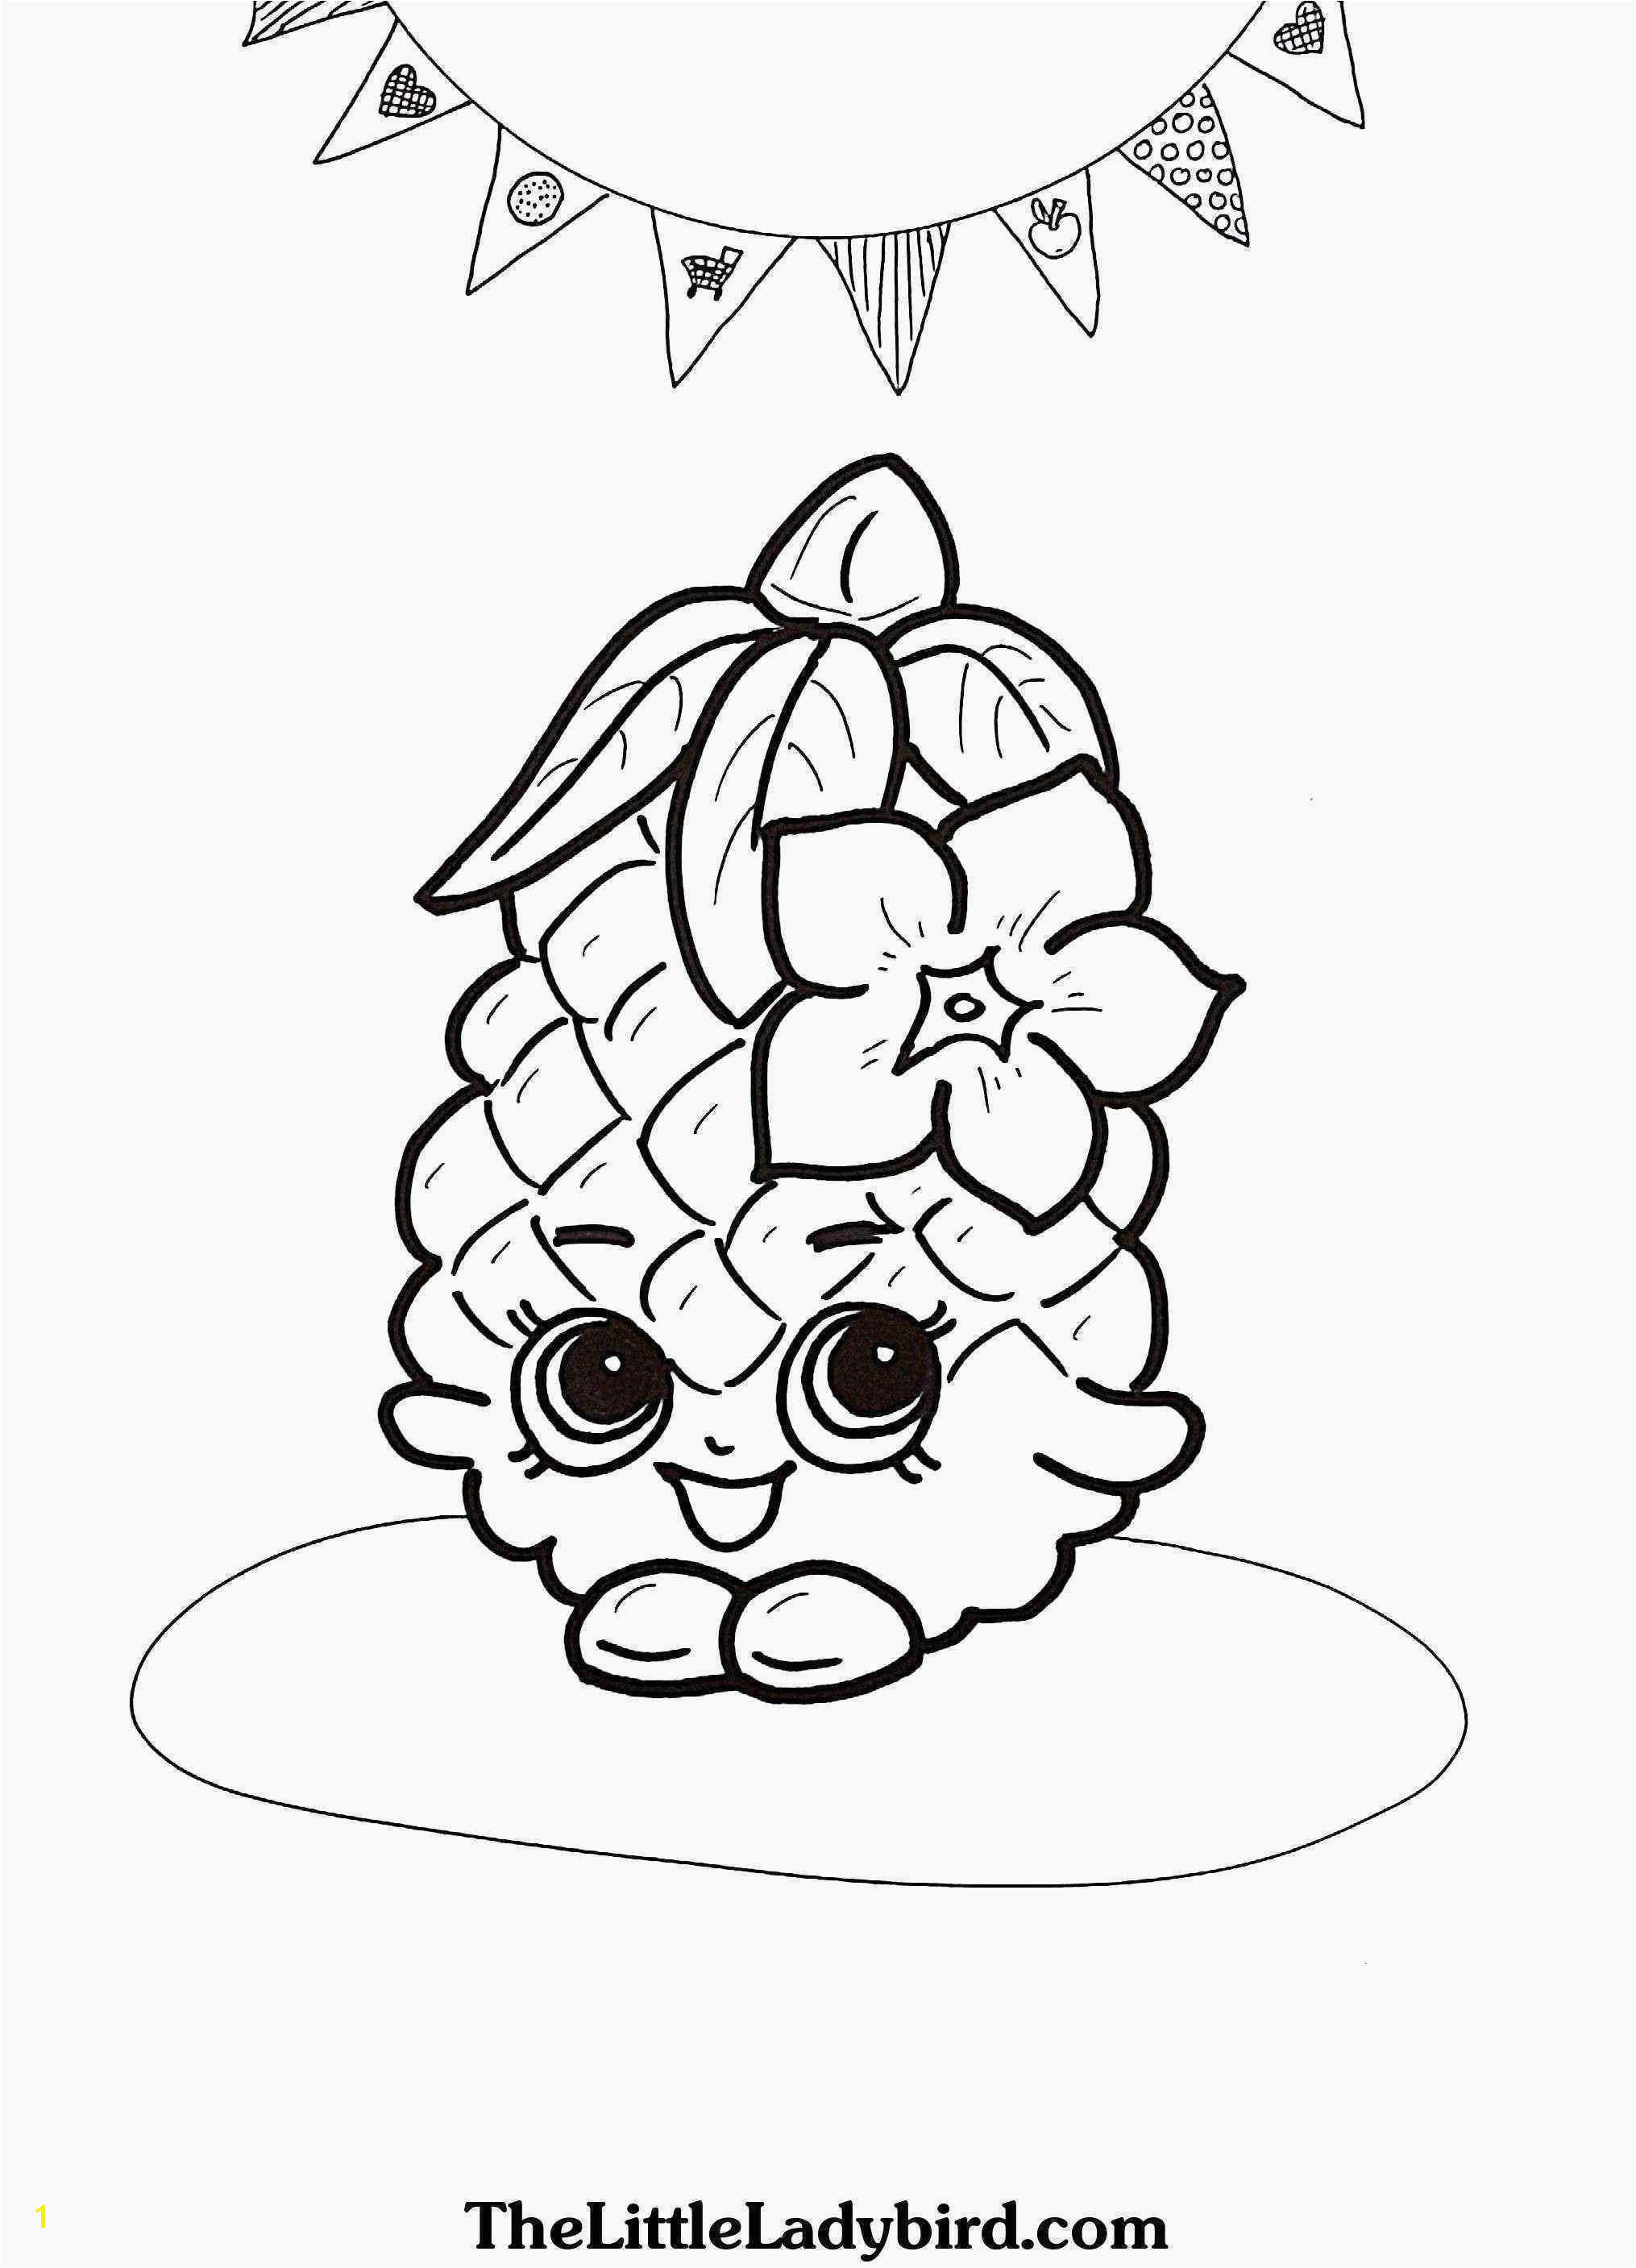 Lovely Christmas Drawing Ideas – Yepigames 92 Cute Christmas Coloring Sheets Merry Christmas Coloring Pages